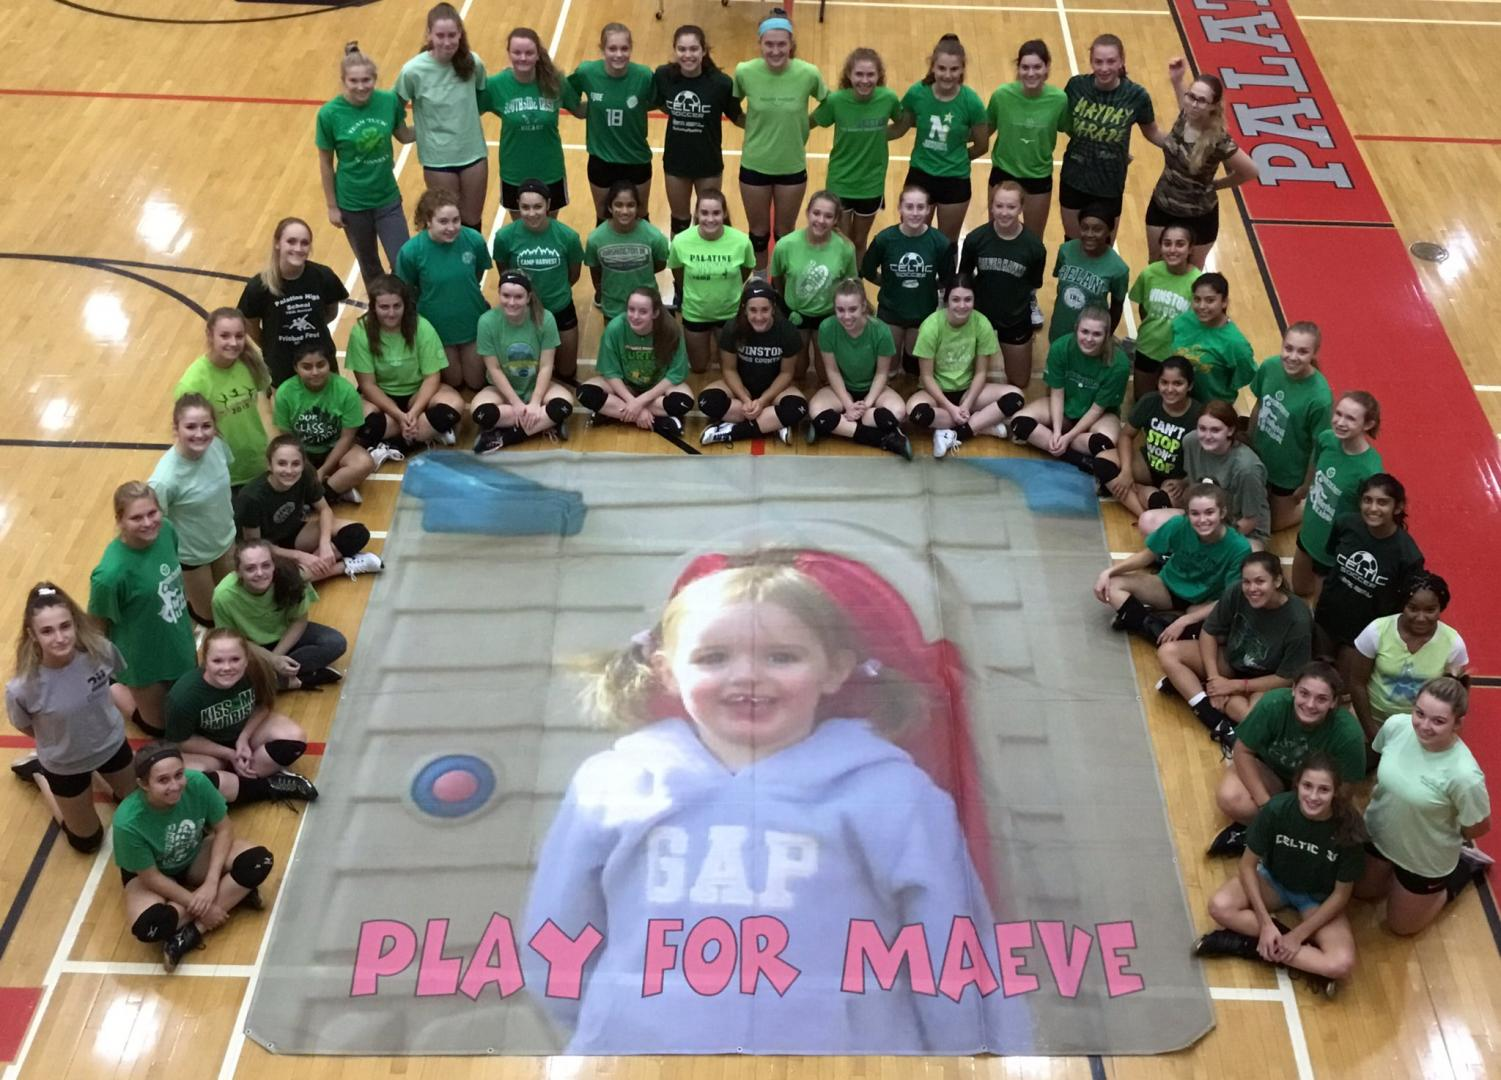 PHS volleyball showing their support before game day.